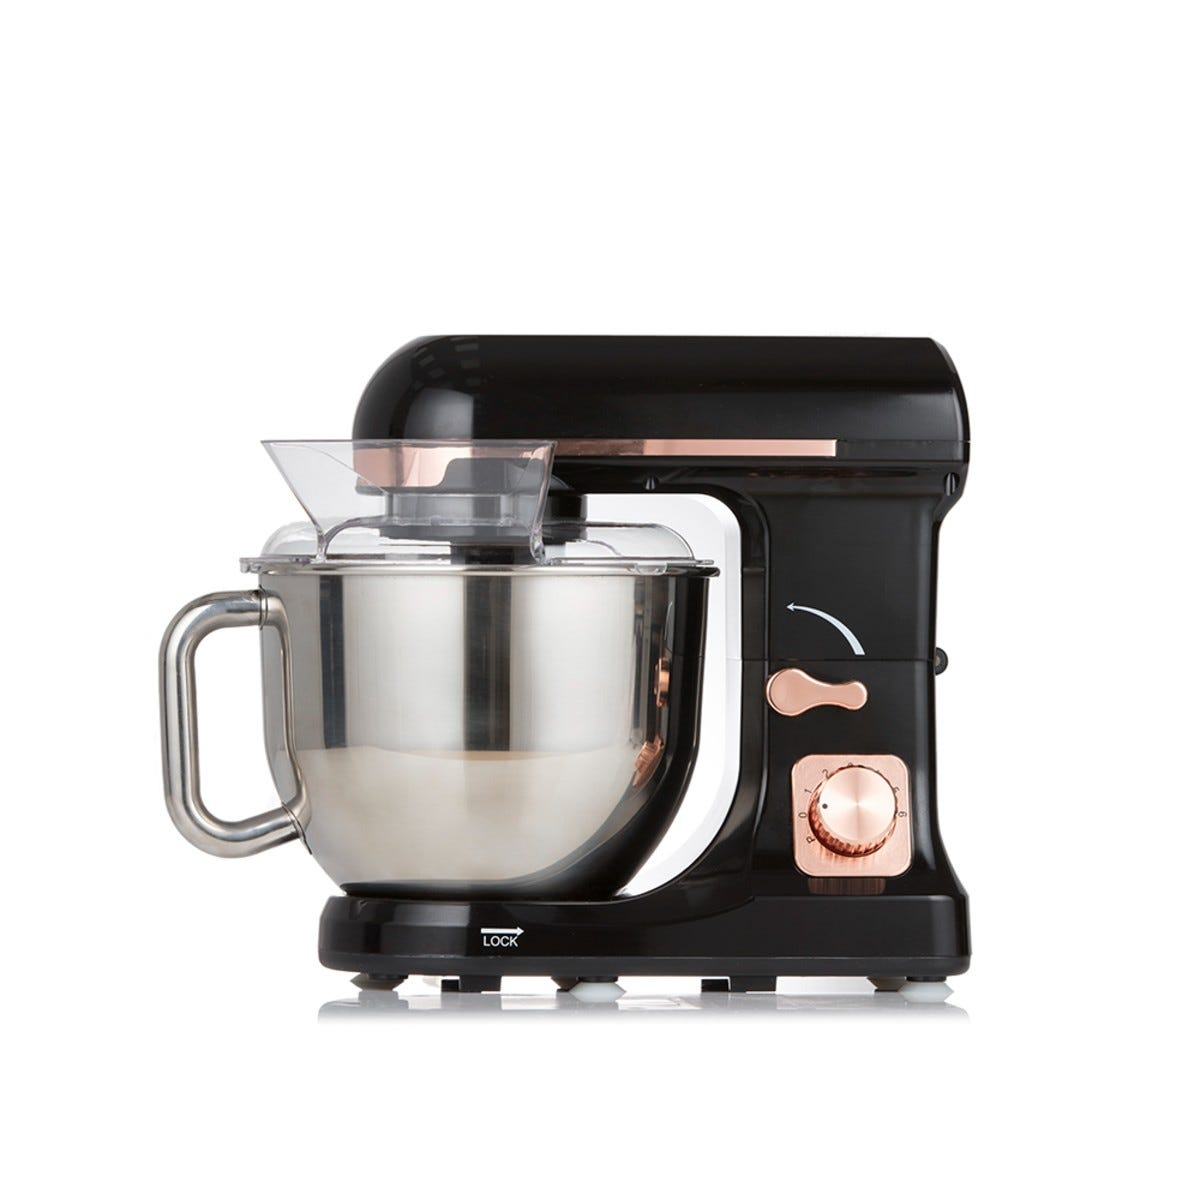 Tower T12033RG 1000W 5L Stand Mixer - Black and Rose Gold